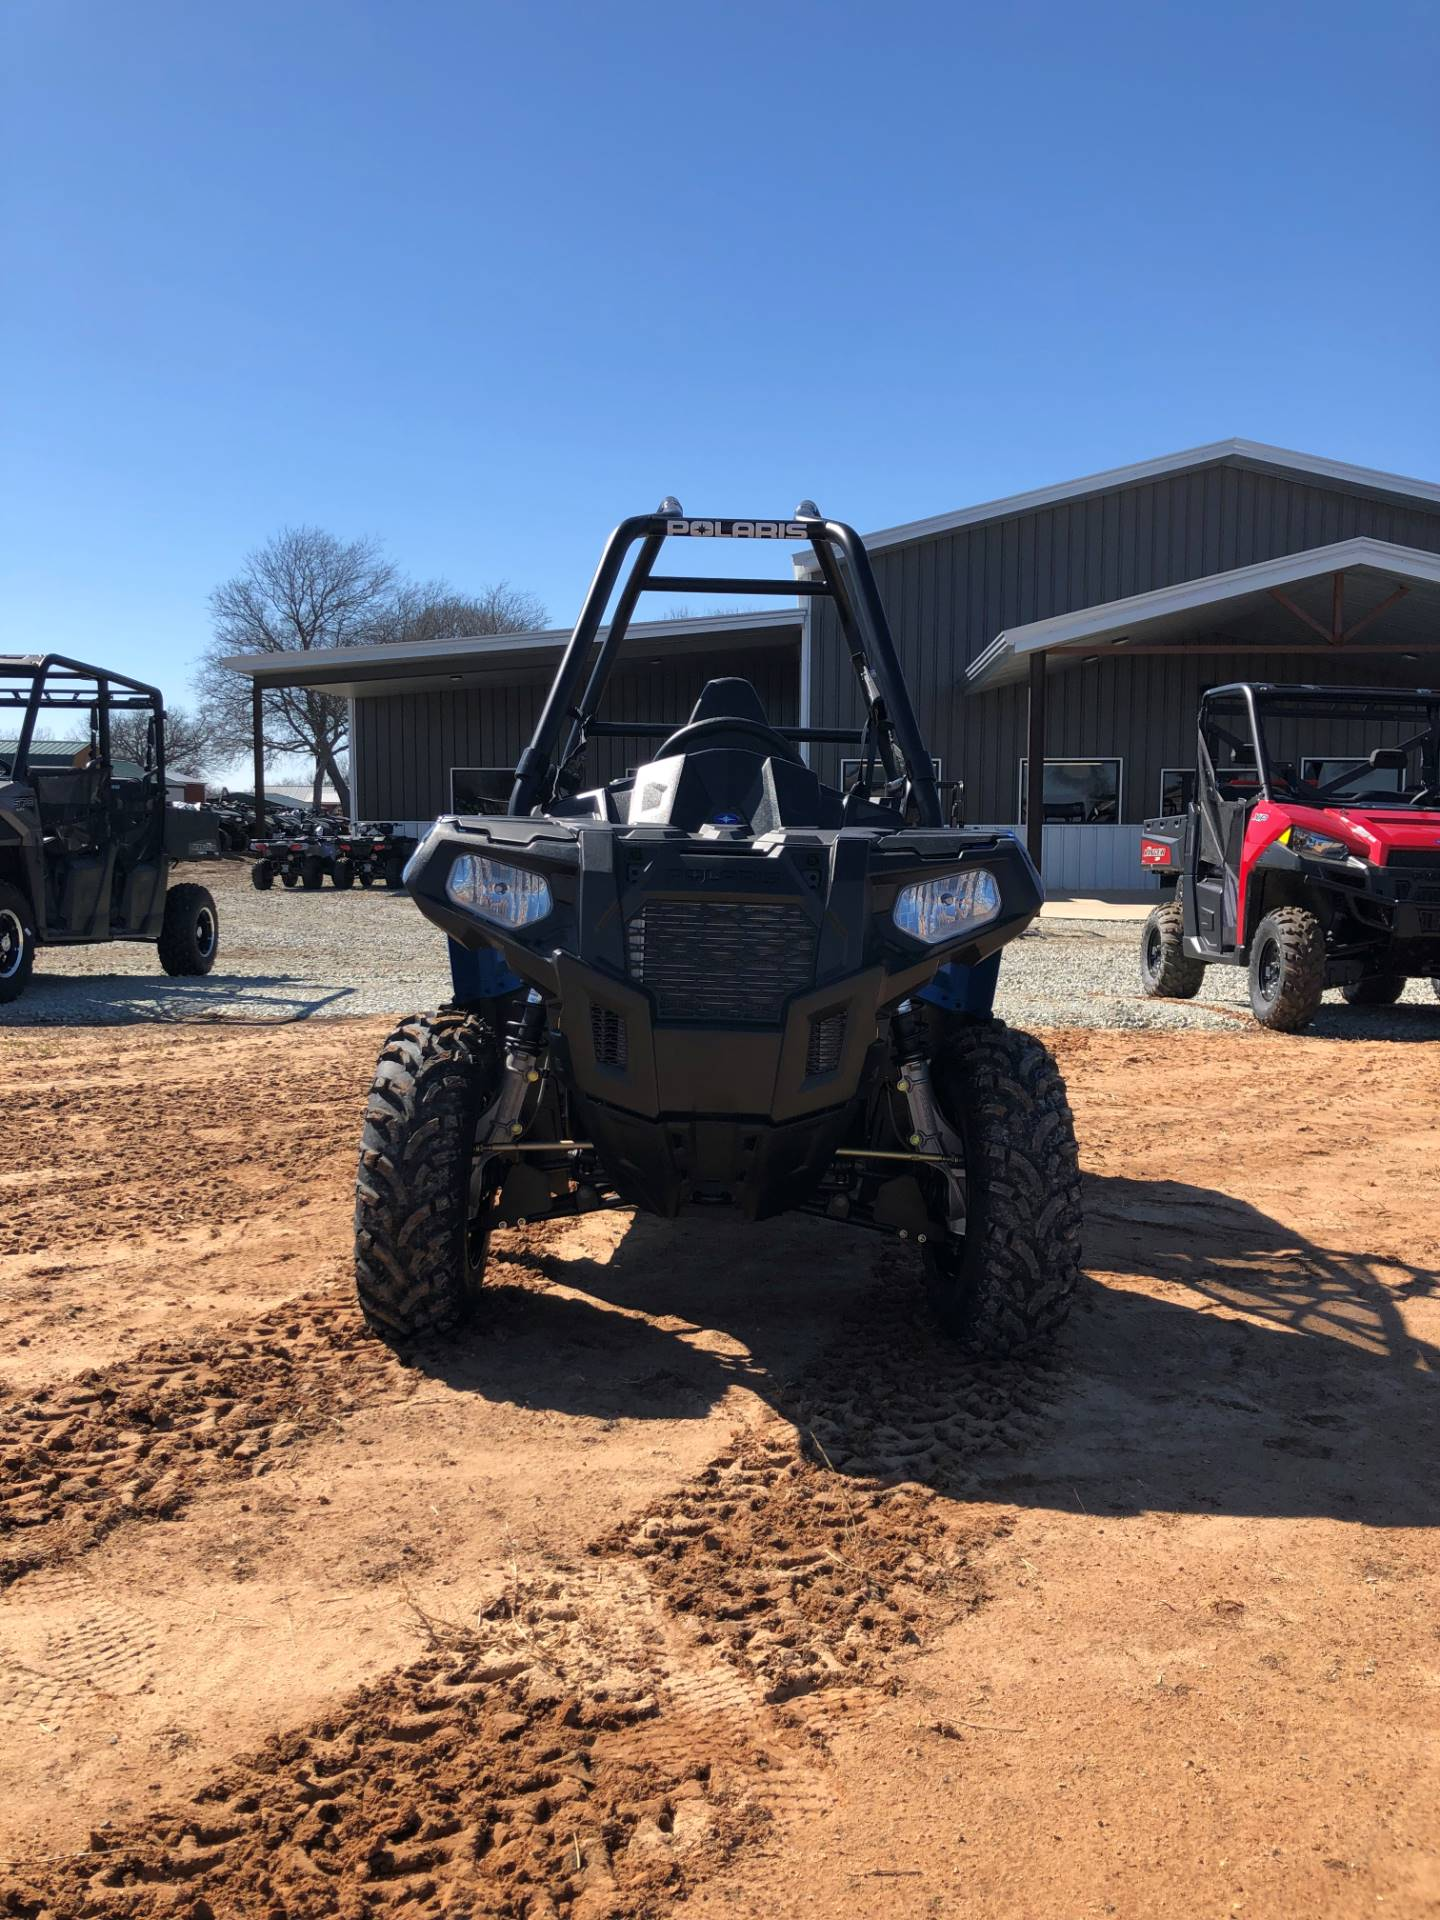 2019 Polaris Ace 500 in Ada, Oklahoma - Photo 2